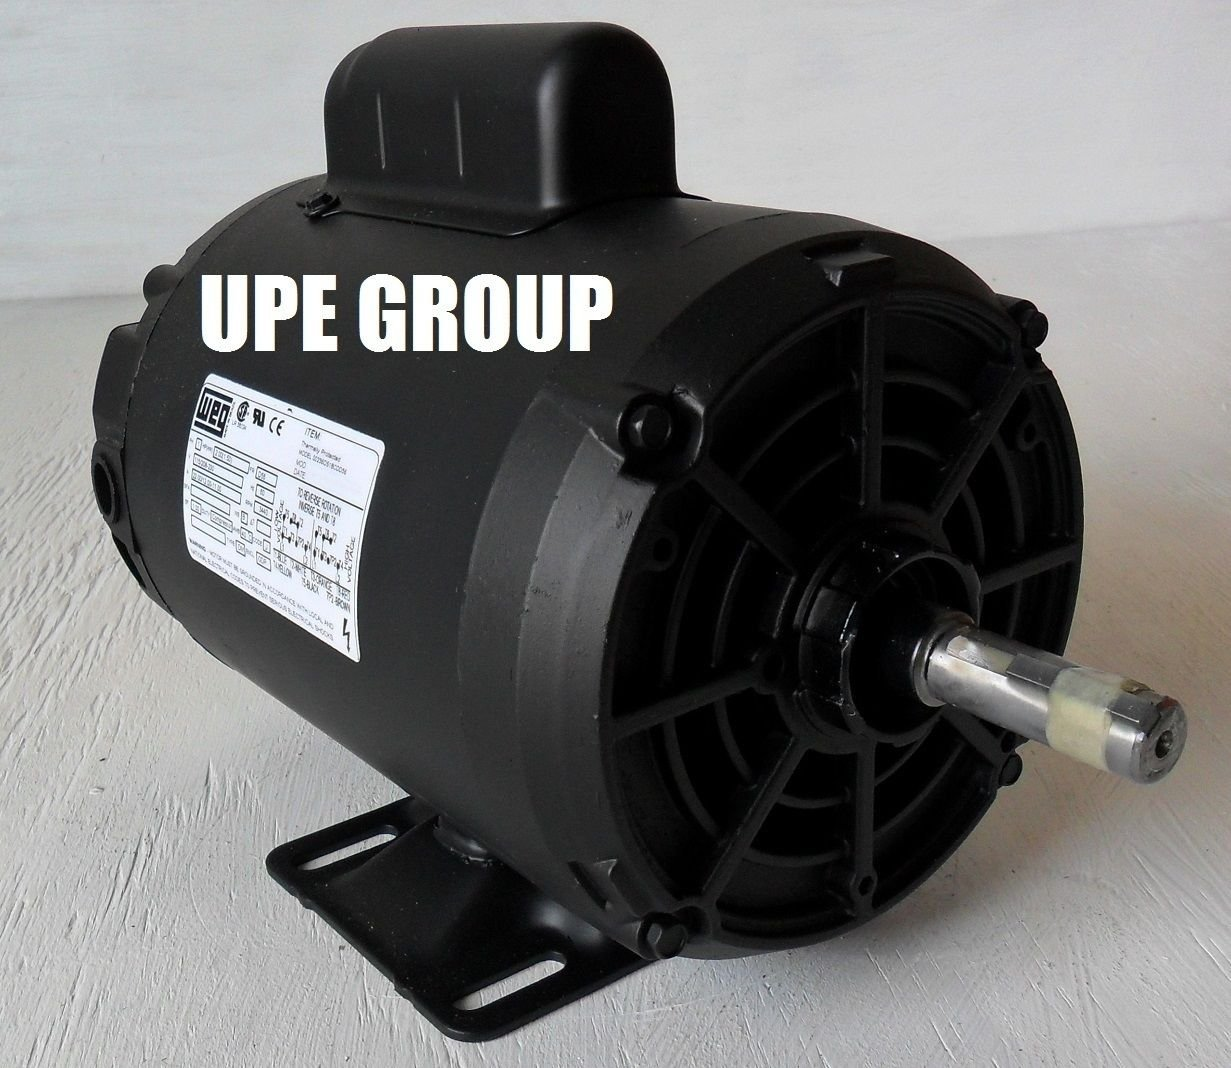 New WEG 2HP Electric Motor Fan Pump Compressor General purpose 56 frame 3495 RPM 1 phase 115/208-240VAC